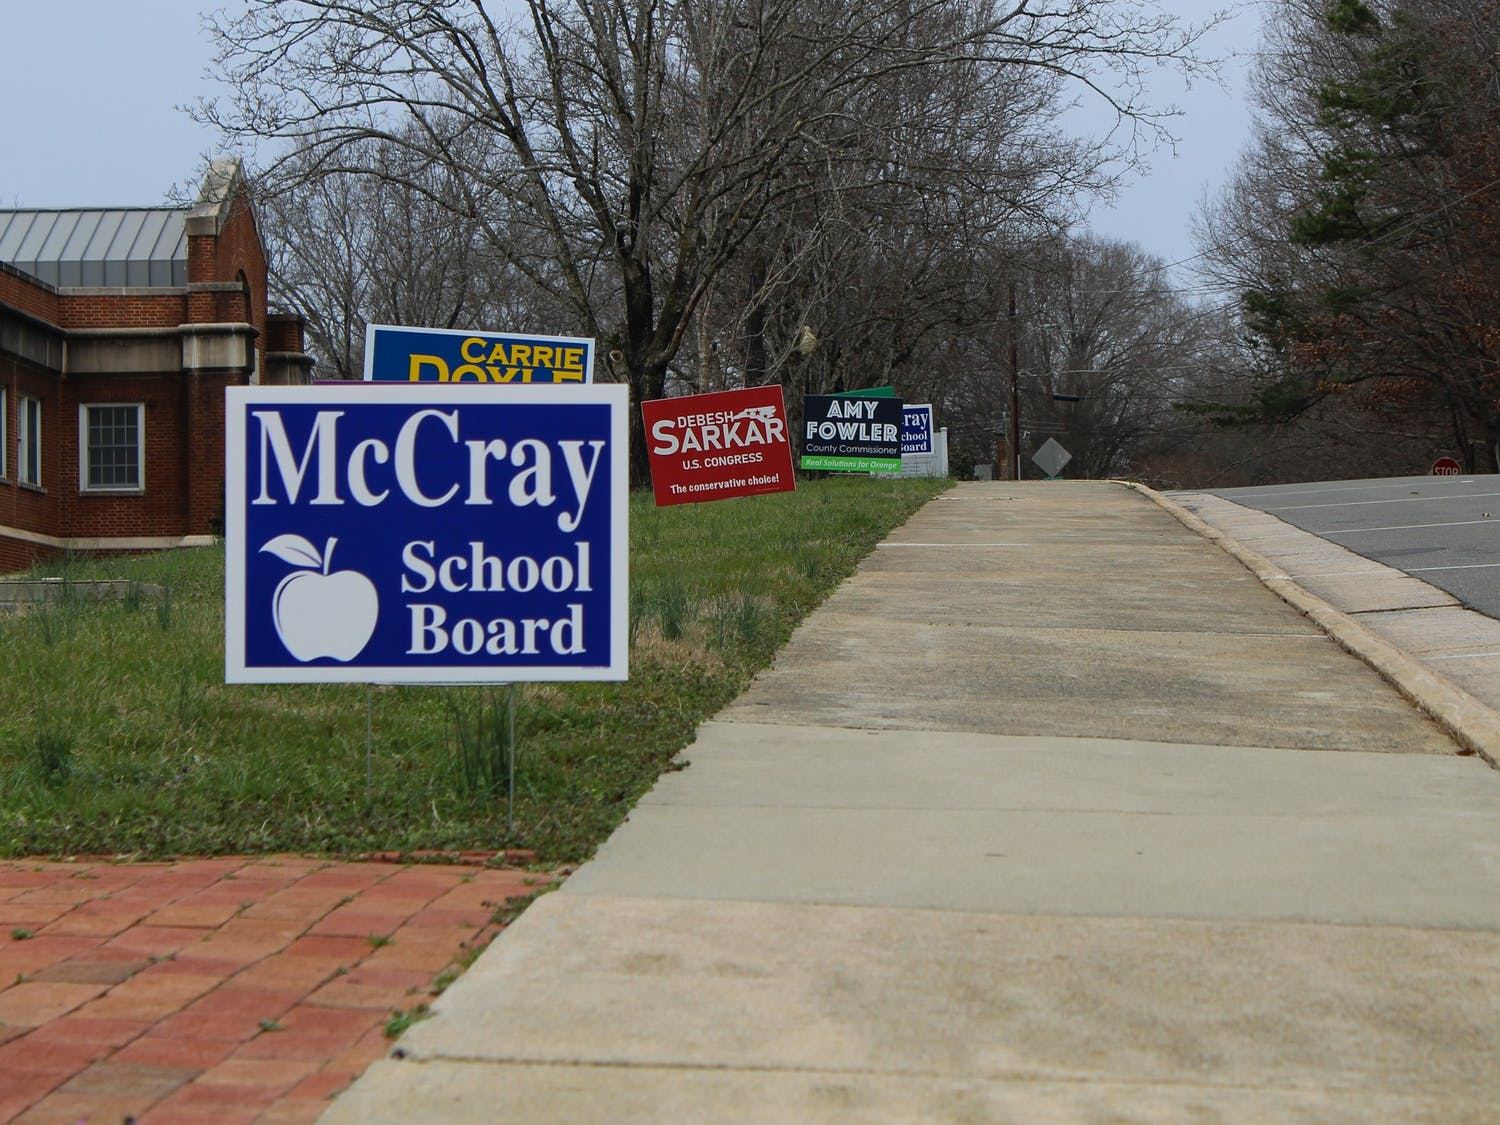 Candidate signs stand outside the Orange County Board of Elections building in Hillsborough, N.C., ahead of the March 3, 2020 primary on Feb. 8, 2020.